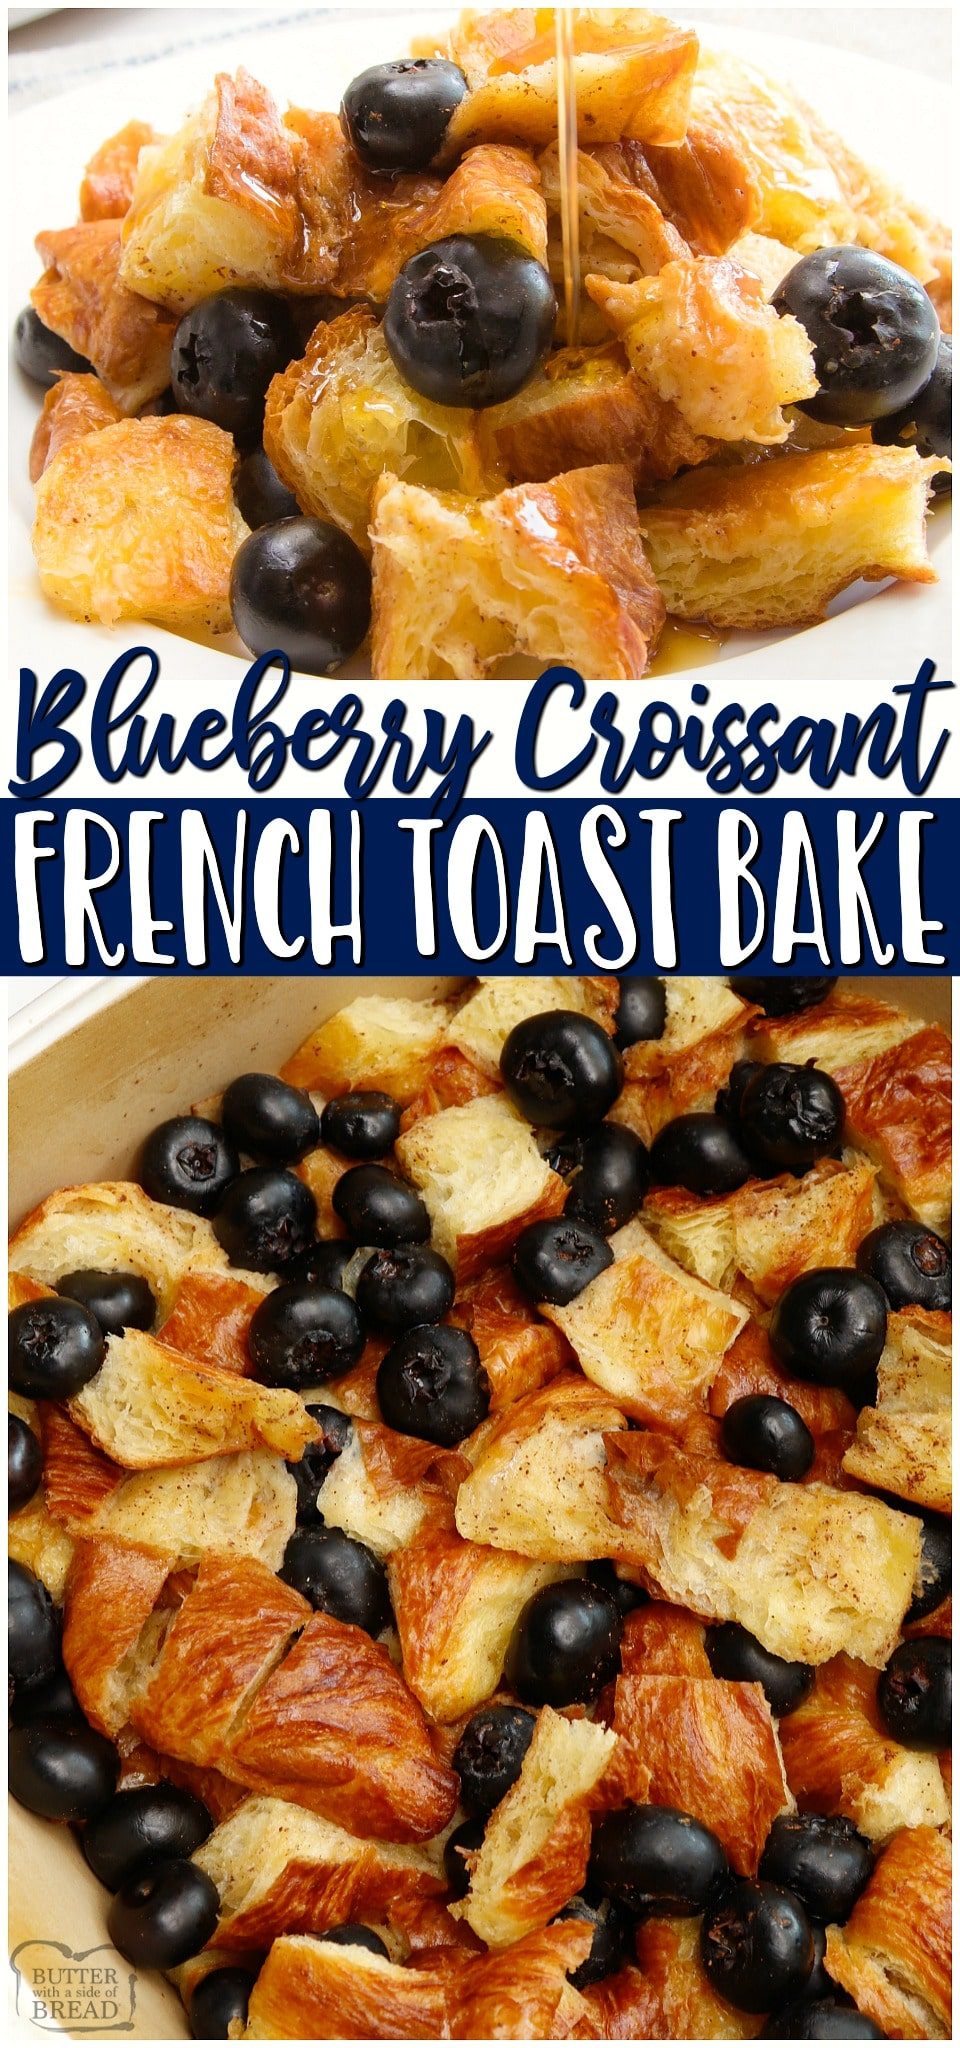 Blueberry Croissant French Toast Bake is a buttery, fluffy, and flavorful breakfast recipe. With 5 ingredients & a few simple steps, you can have an Easy Croissant French Toast Casserole in no time!